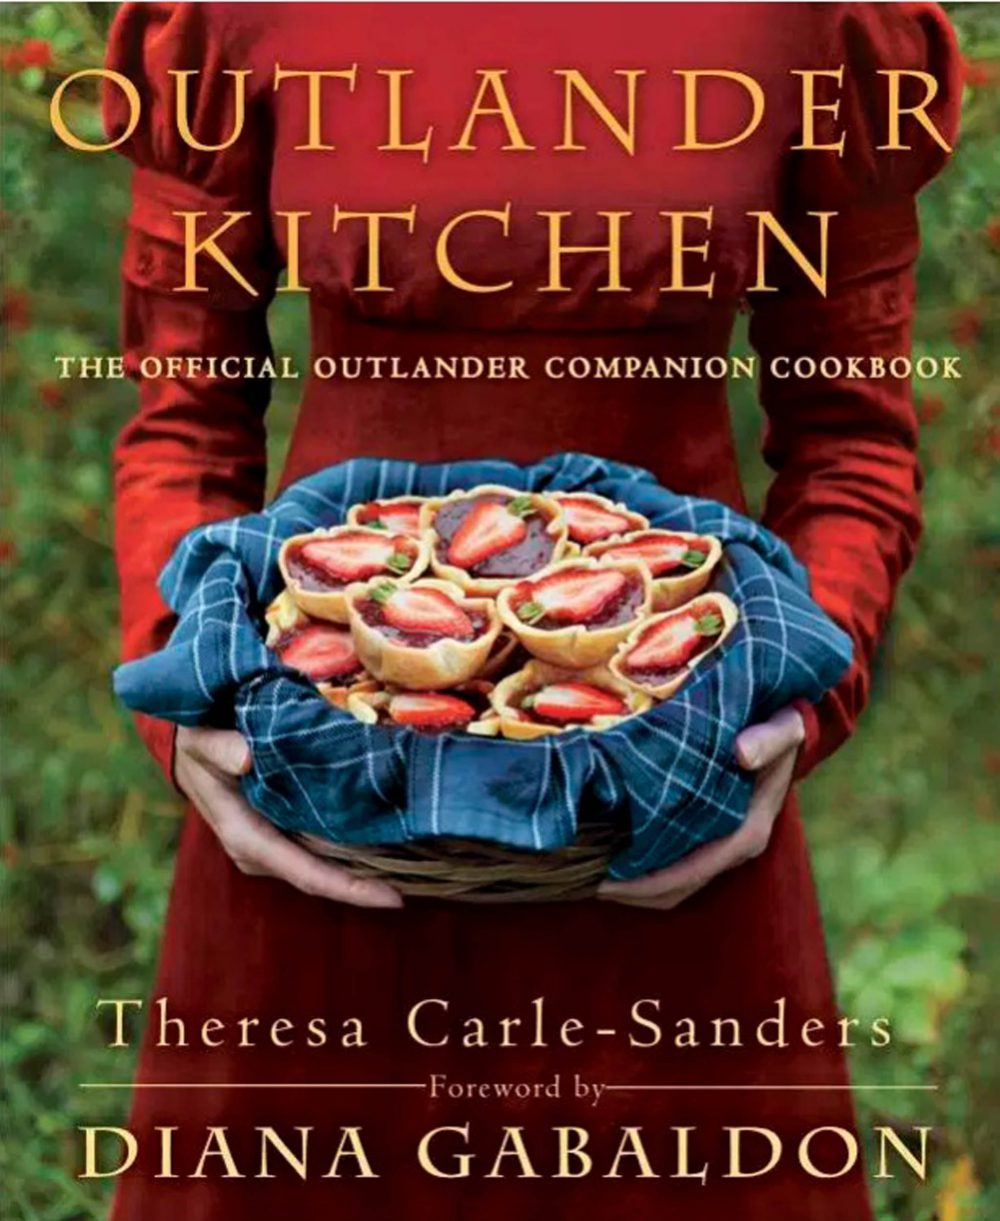 "AN Outlander cook book has been ridiculed after featuring 18th Century Scottish classics such as tacos, fried chicken and enchiladas Outlander Kitchen is billed as the official companion to the hit drama series in which a Second World War nurse is transported to Highland Scotland in 1743. While the book features classic several Scottish dishes, the Canadian author has filled out the volume with  north American recipes such as ""Maple Pudding"", ""Apple Fritters"" and ""Sweet Potato Pie"". Theresa Carle-Sanders explained that readers did not want to eat 18th Highland dishes every day. But Scottish chefs have hit out at the £25 hardback, which uses American phrases such as ""mom"", and have accused Carle-Sanders of selling out. One particular recipe, for cheese enchiladas, a dish that originated in Mexico, tells the reader to add ""red chile peppers to taste"" and ""kosher salt"". It also recommends that the person cooking the dish uses El Pato (corr) brand tomato sauce."